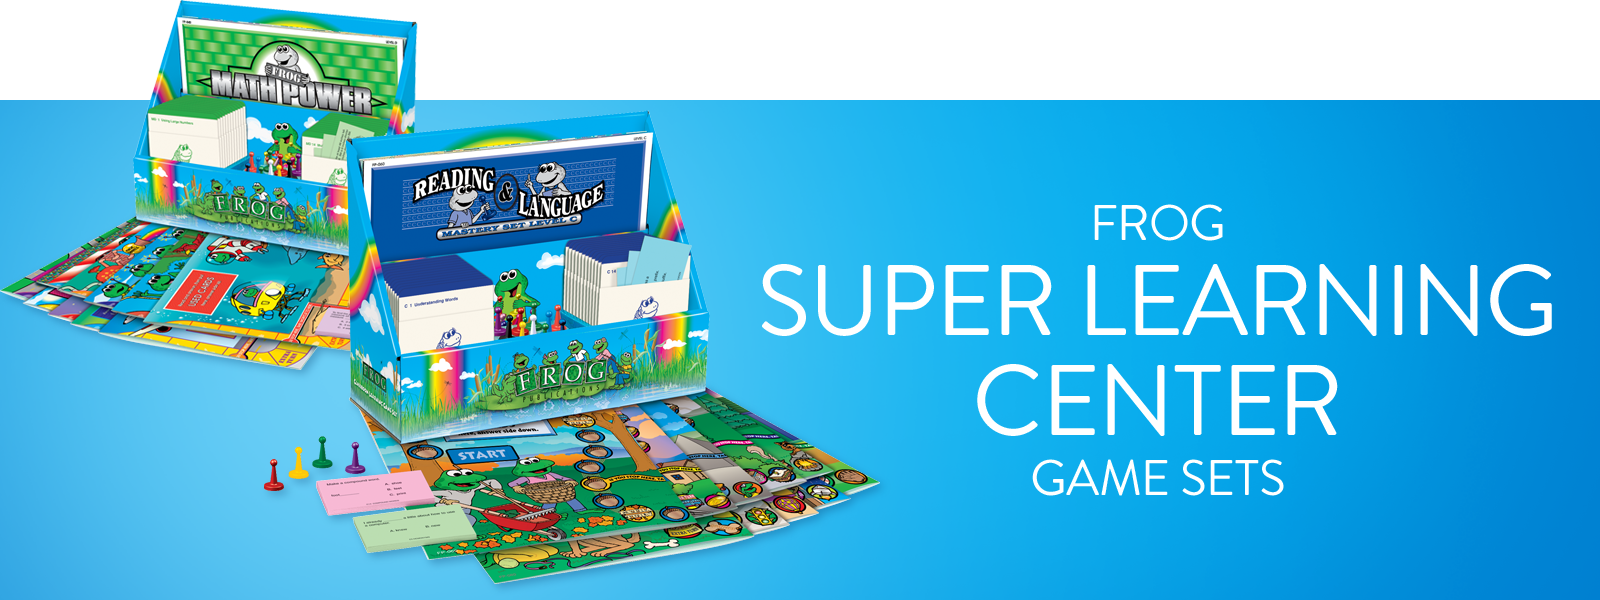 Frog Super Learning Center Game Sets